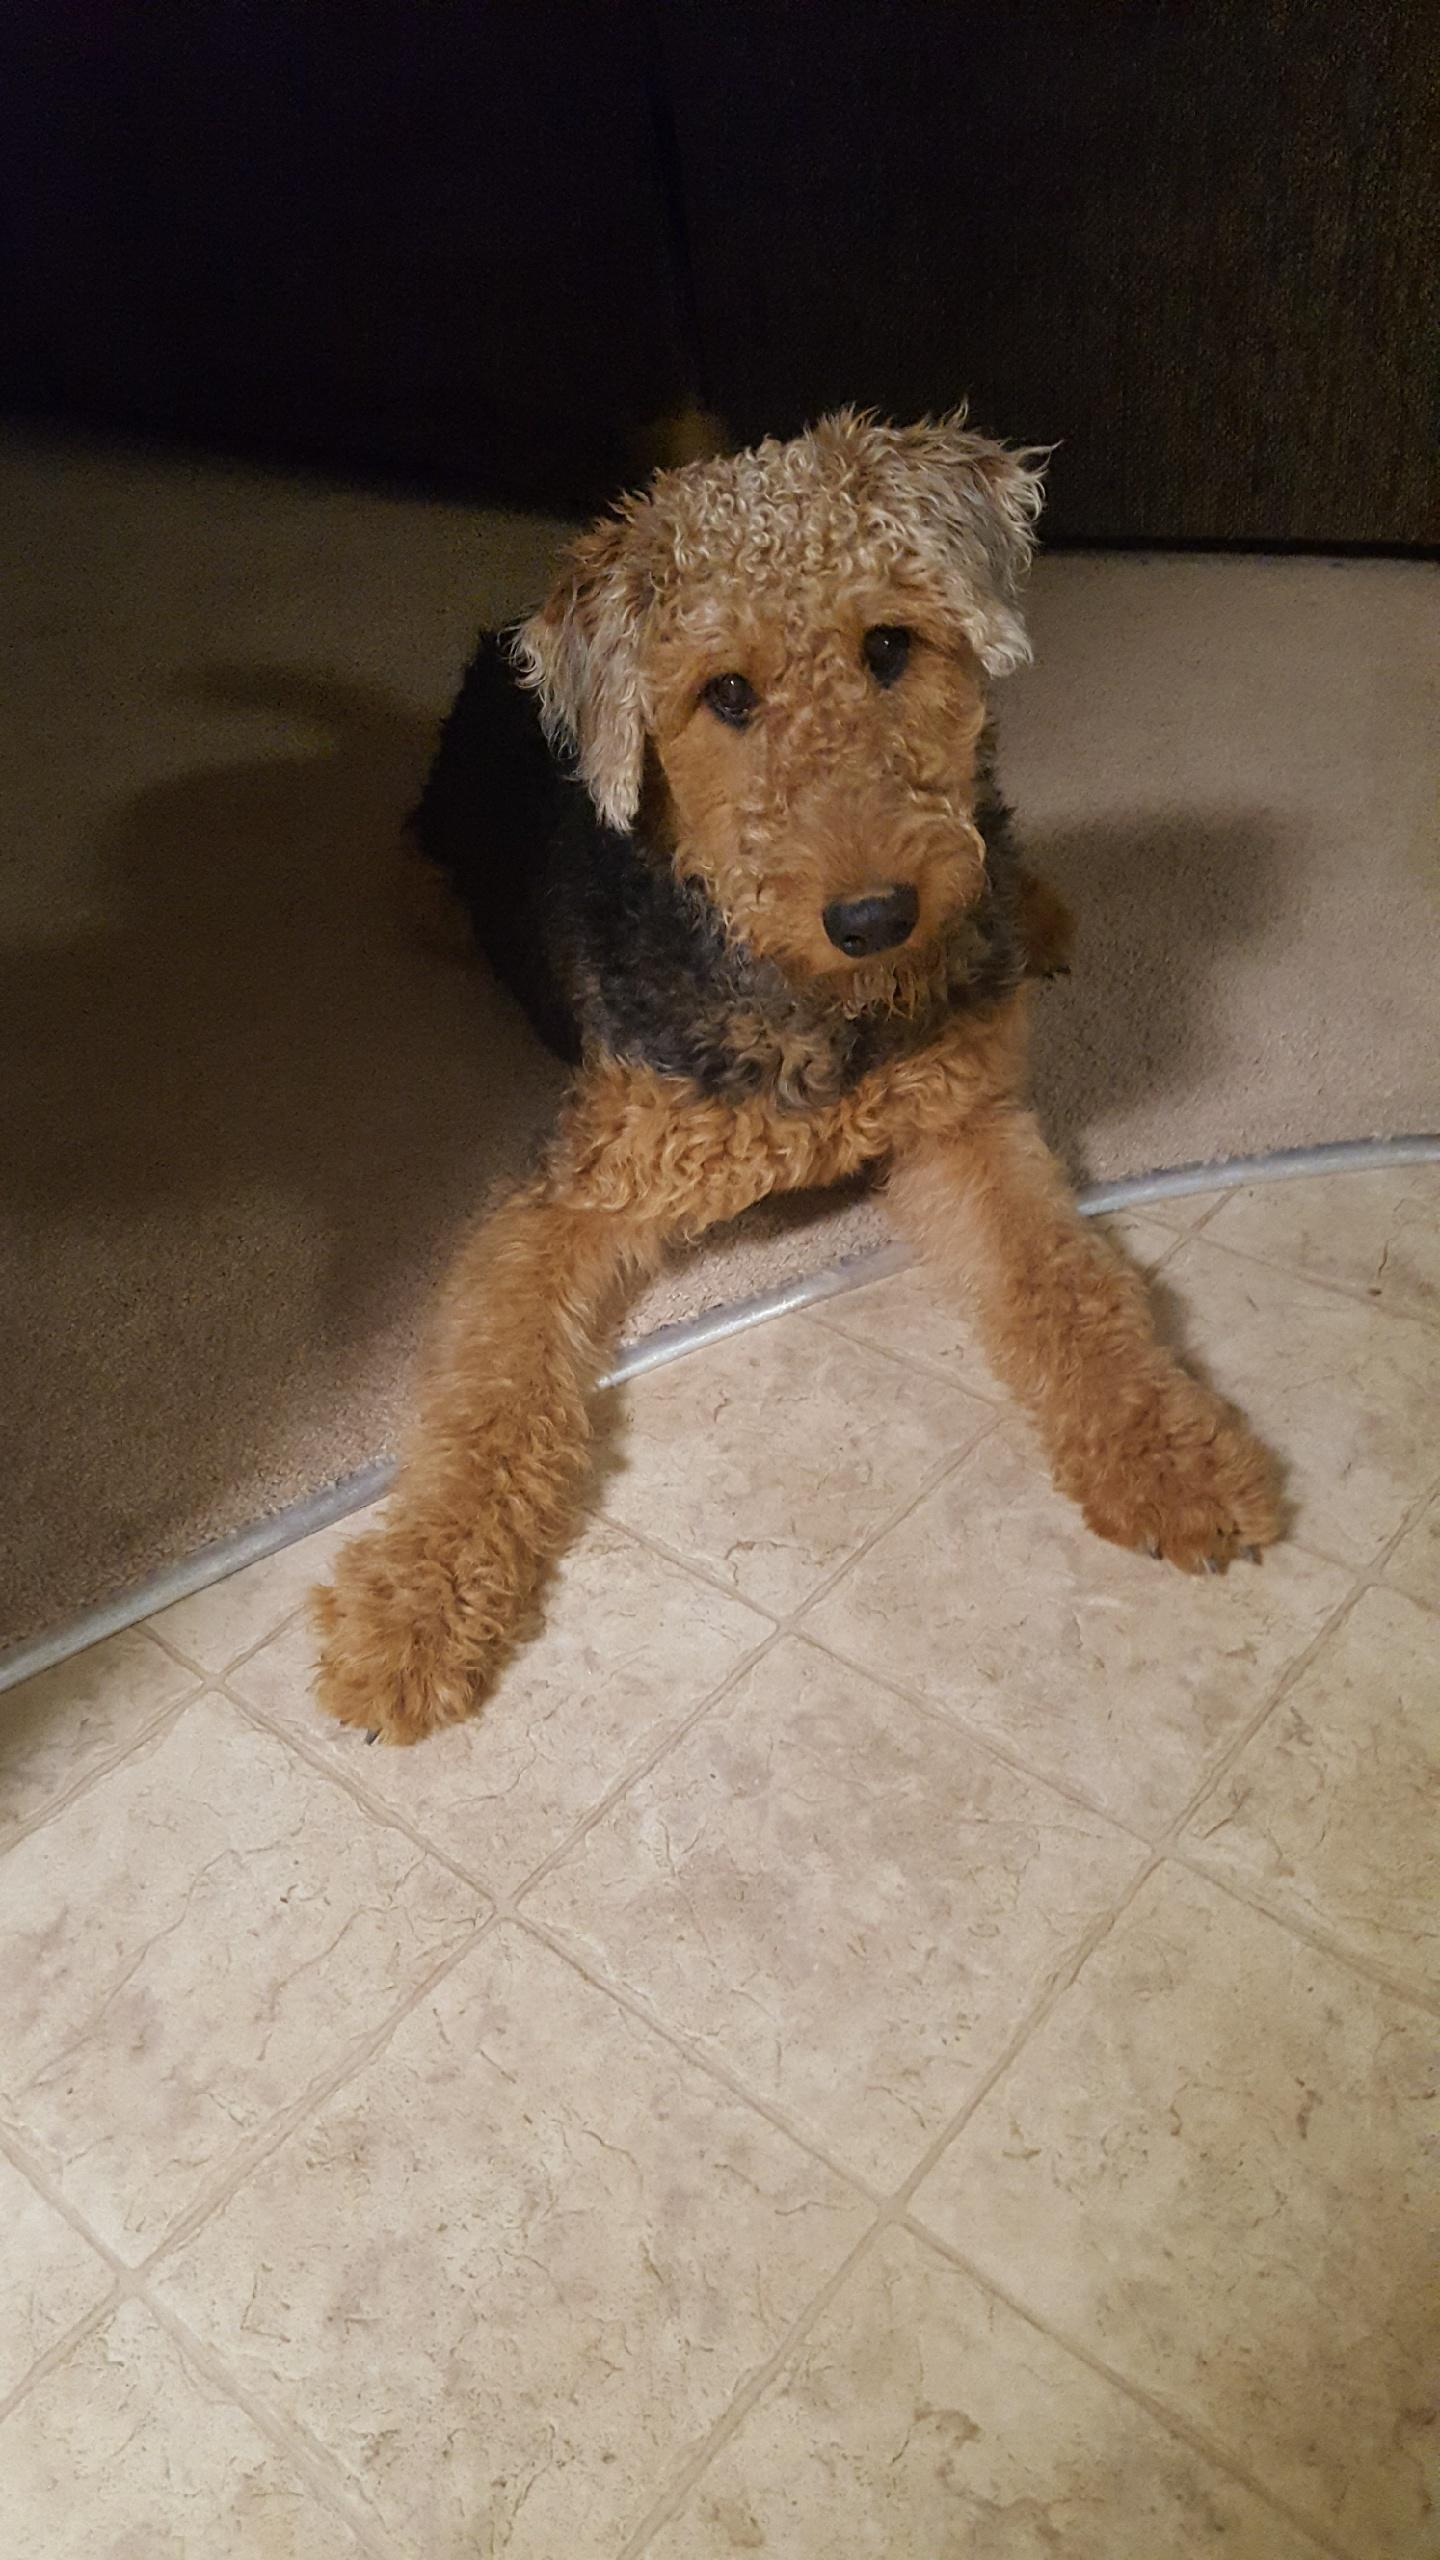 Airedale Terrier Stuffed Animal Cheaper Than Retail Price Buy Clothing Accessories And Lifestyle Products For Women Men